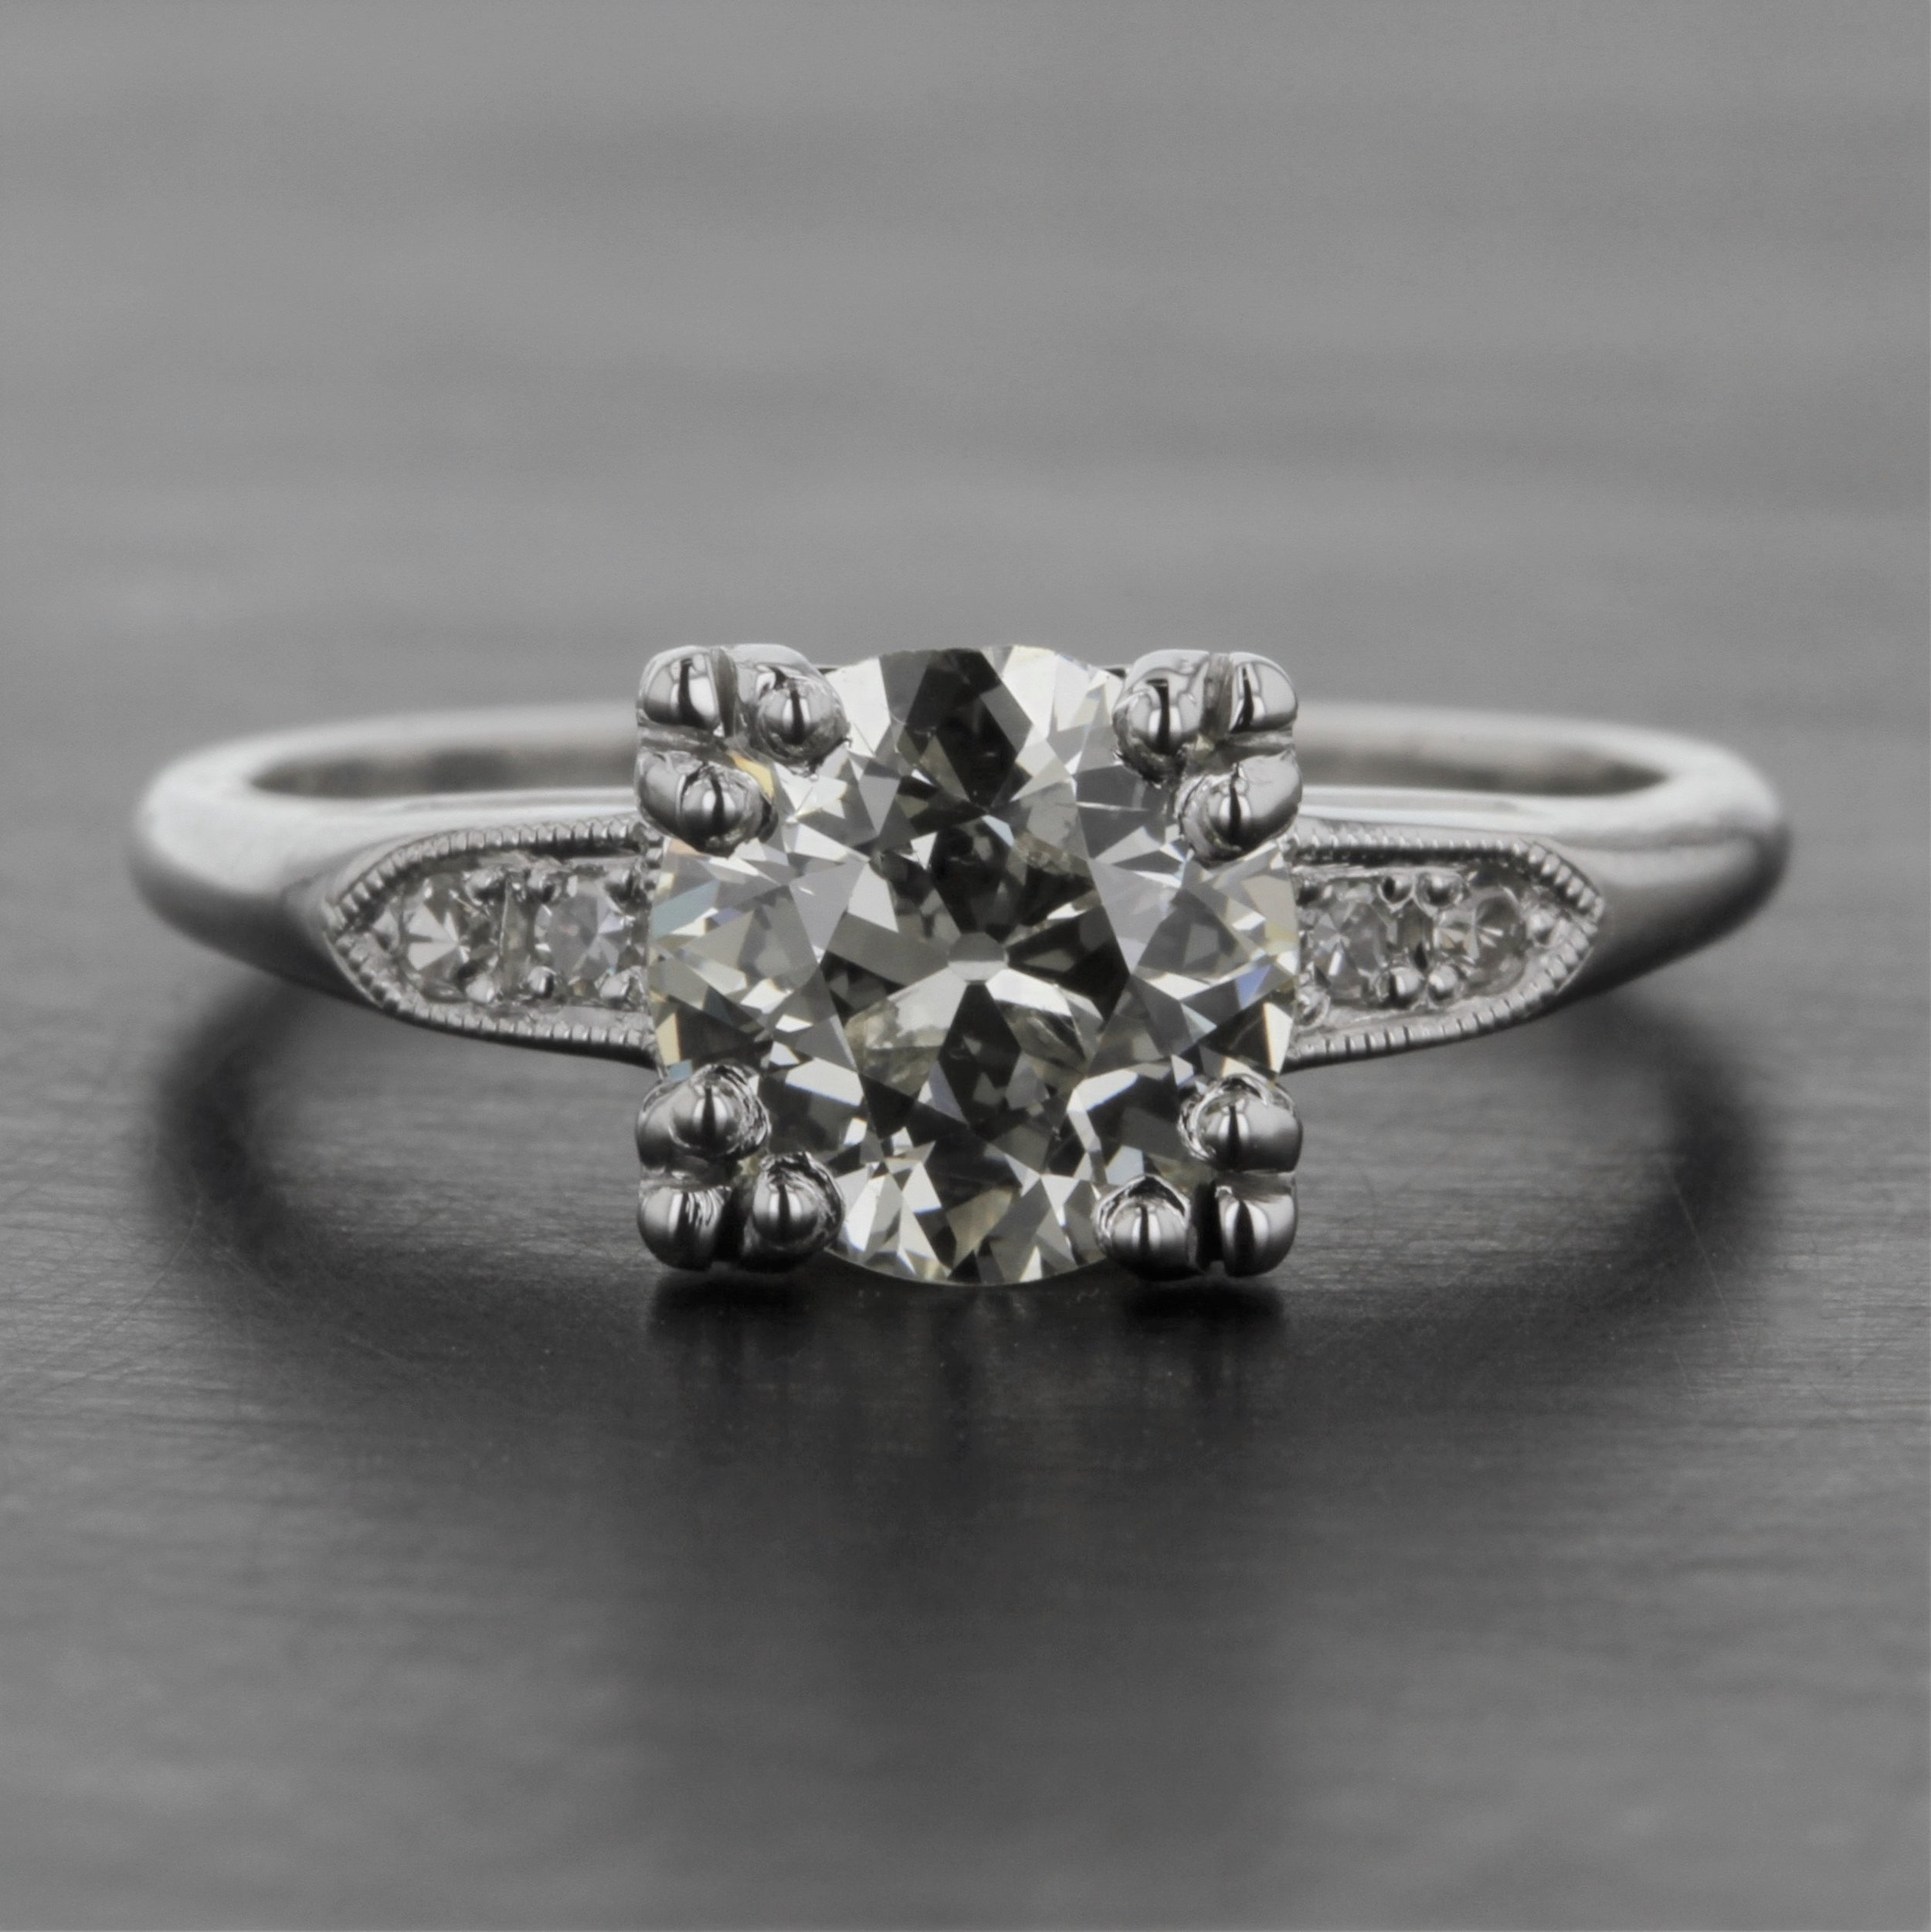 reproduction-platinum-antique-vintage-old-european-cut-engagement-diamond-ring.jpg